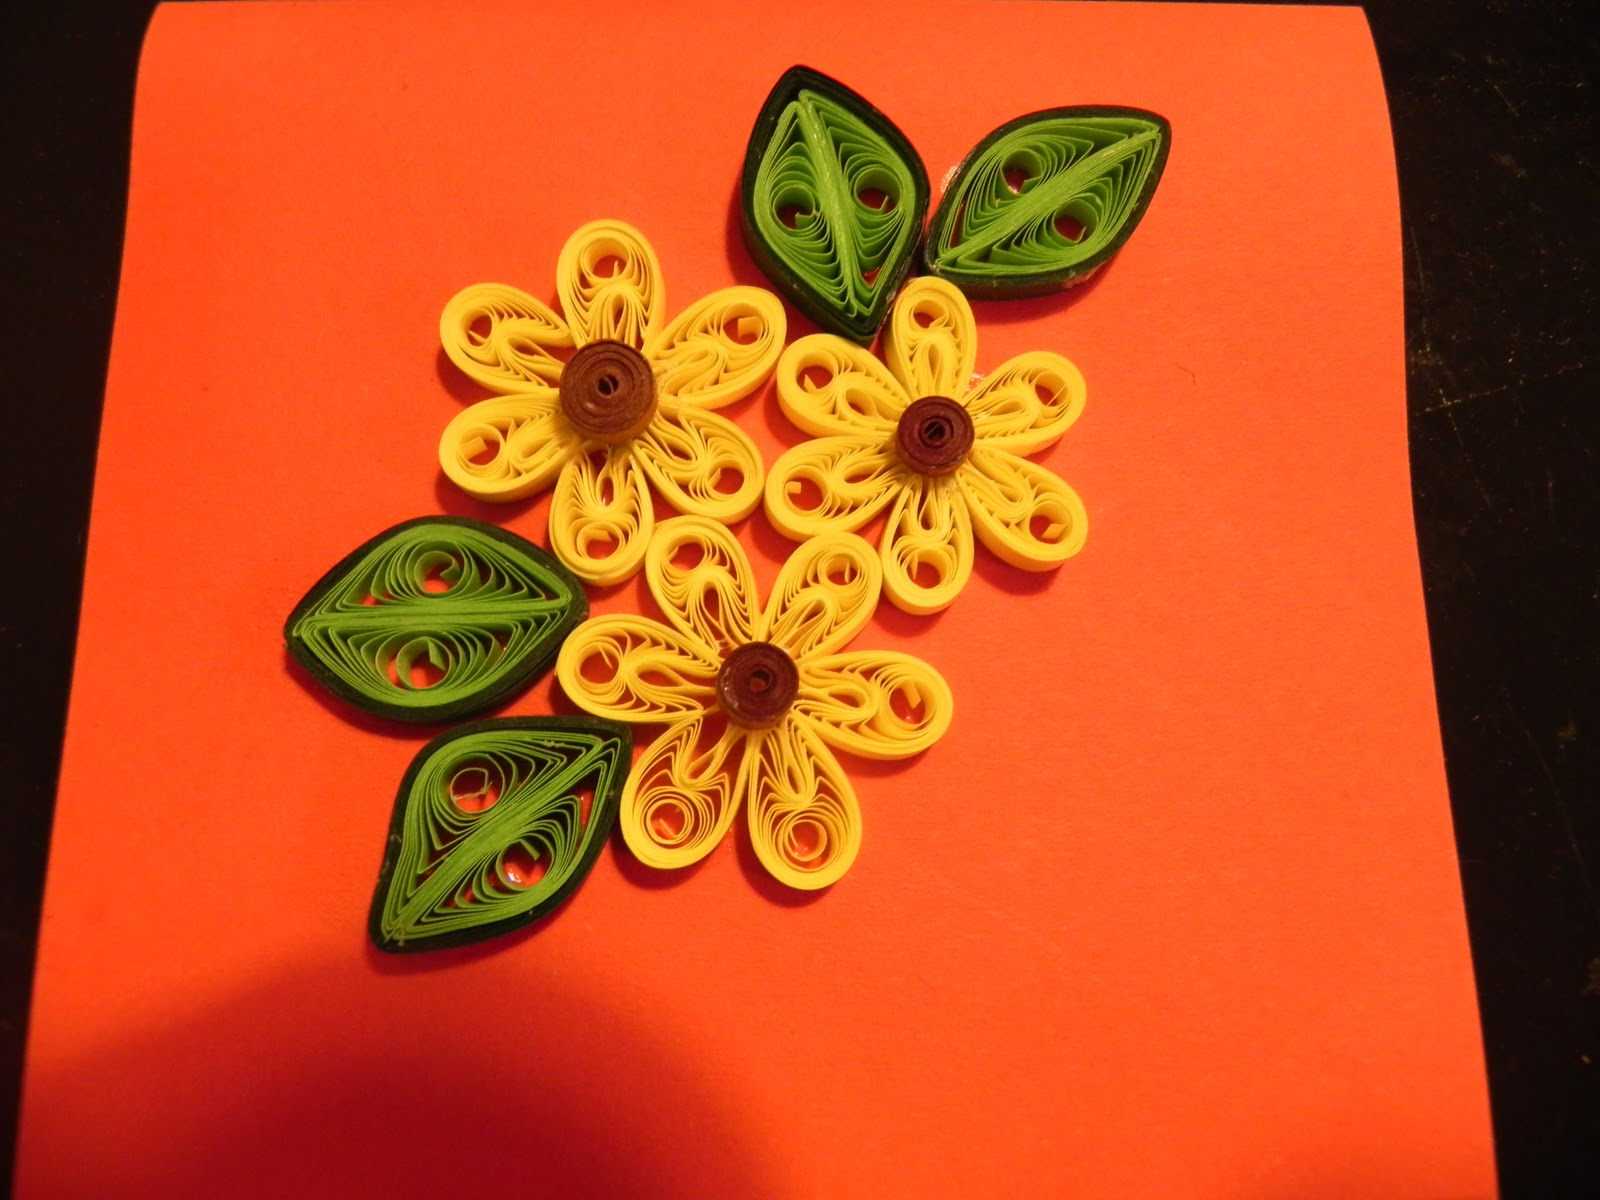 How To Make Quilling Designs On Cards How To Make Quilling Designs